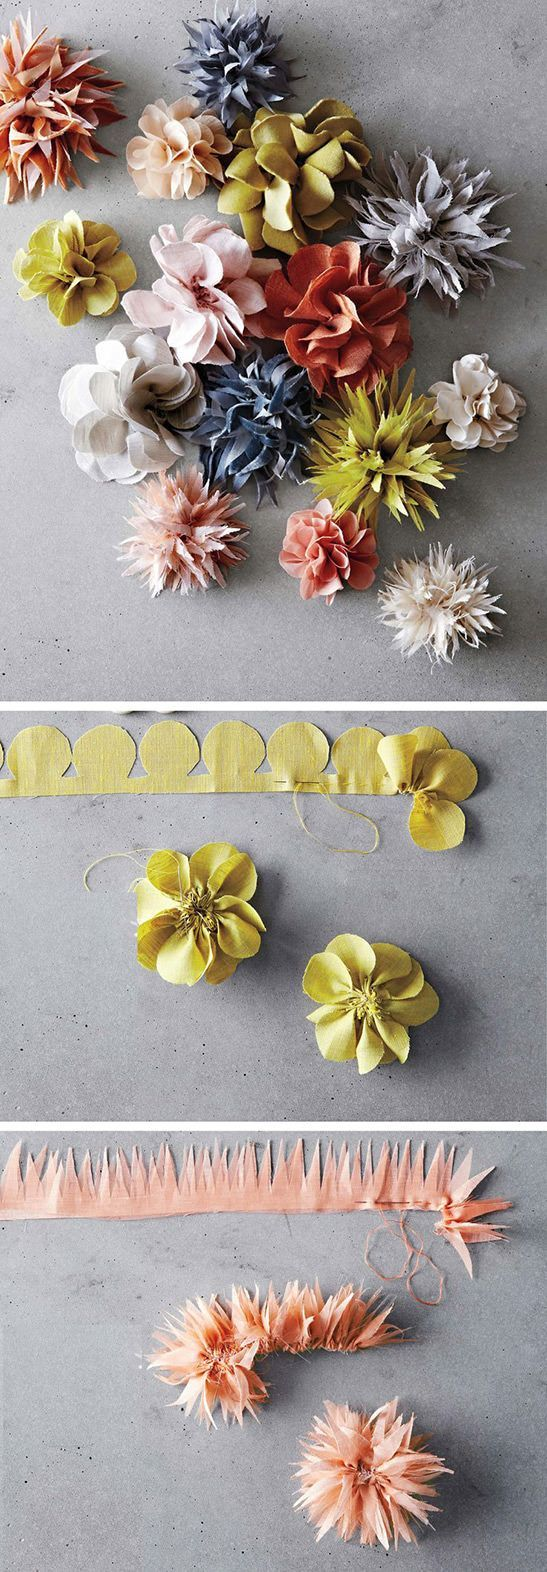 とっても簡単お花さん! Summertime = DIY Time! #fabricflowertutorial